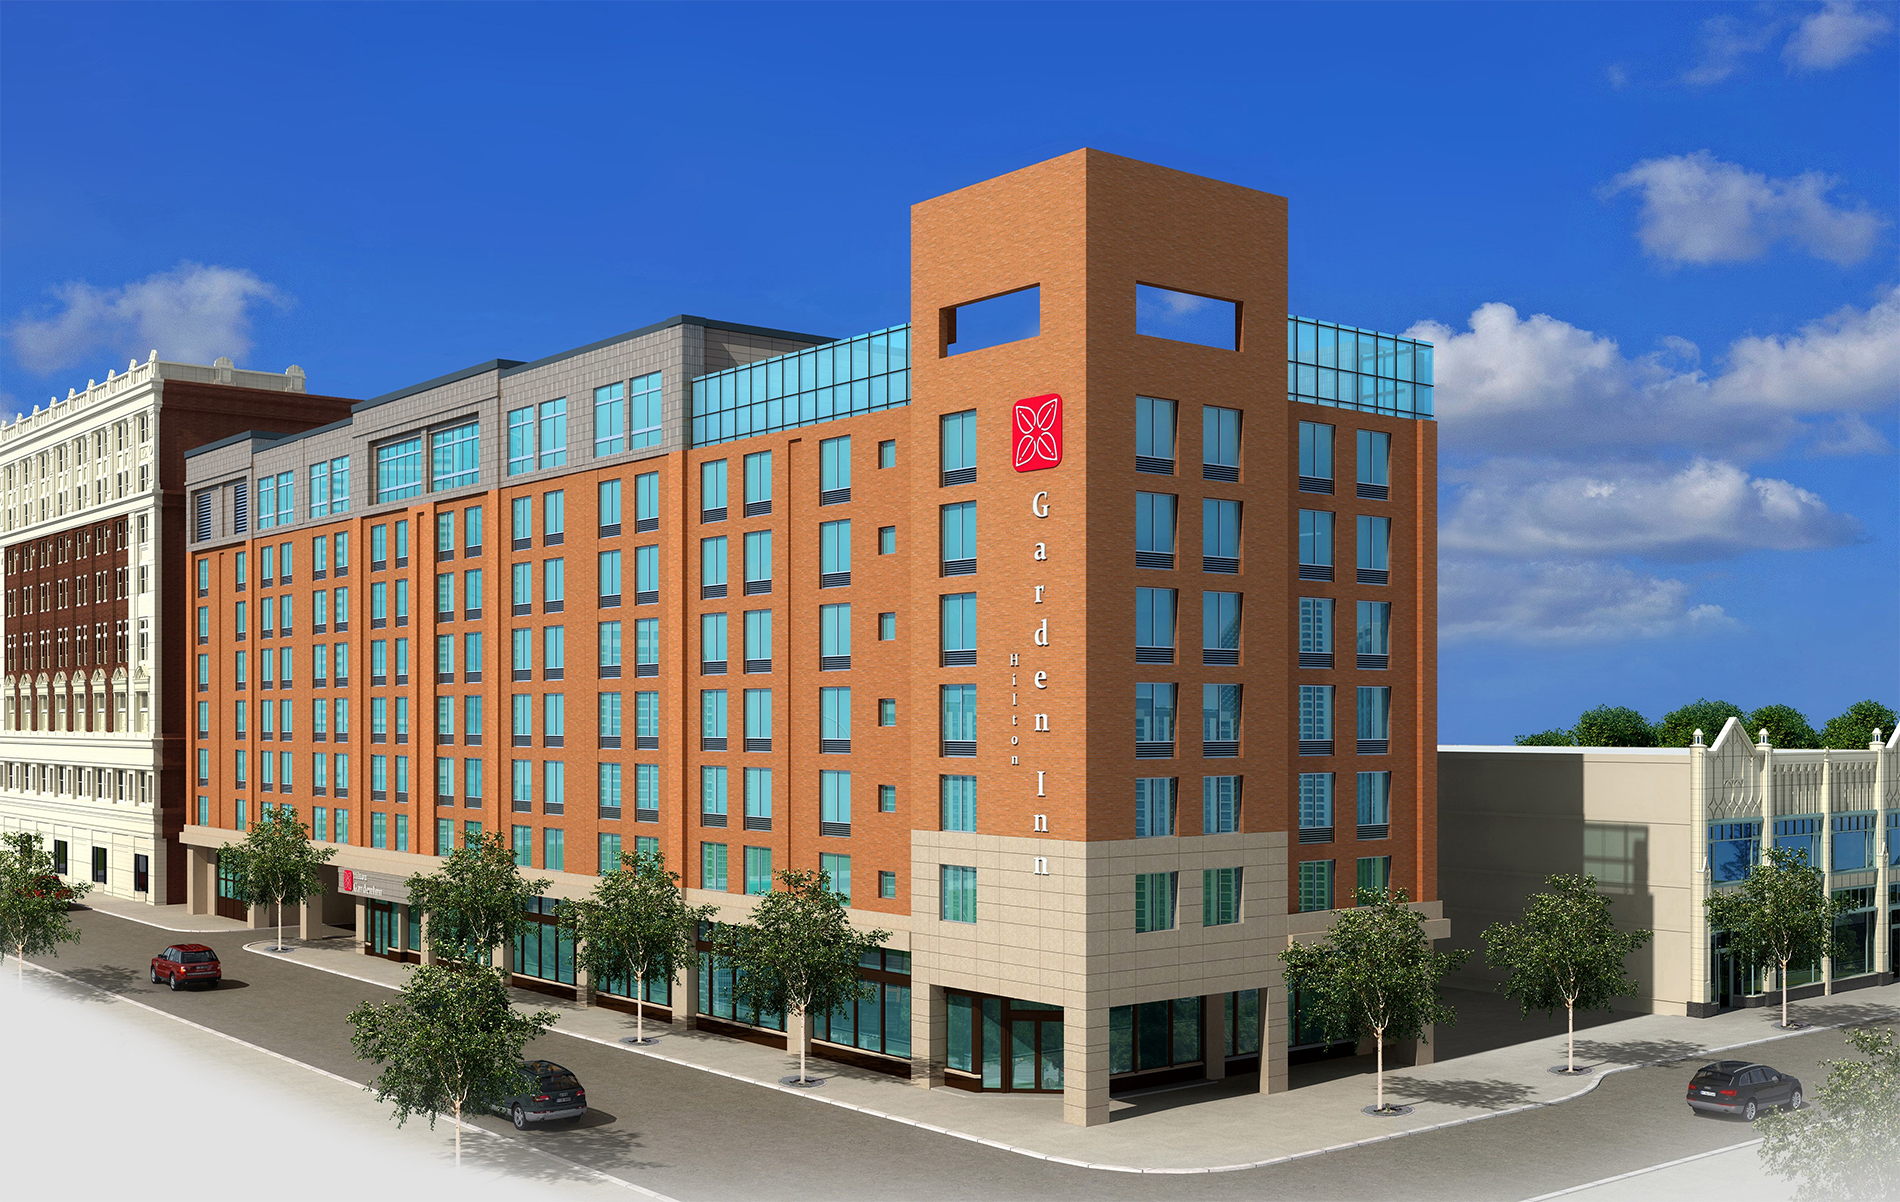 Hilton Garden Inn Welcomes Its Newest Hotel In The Heart